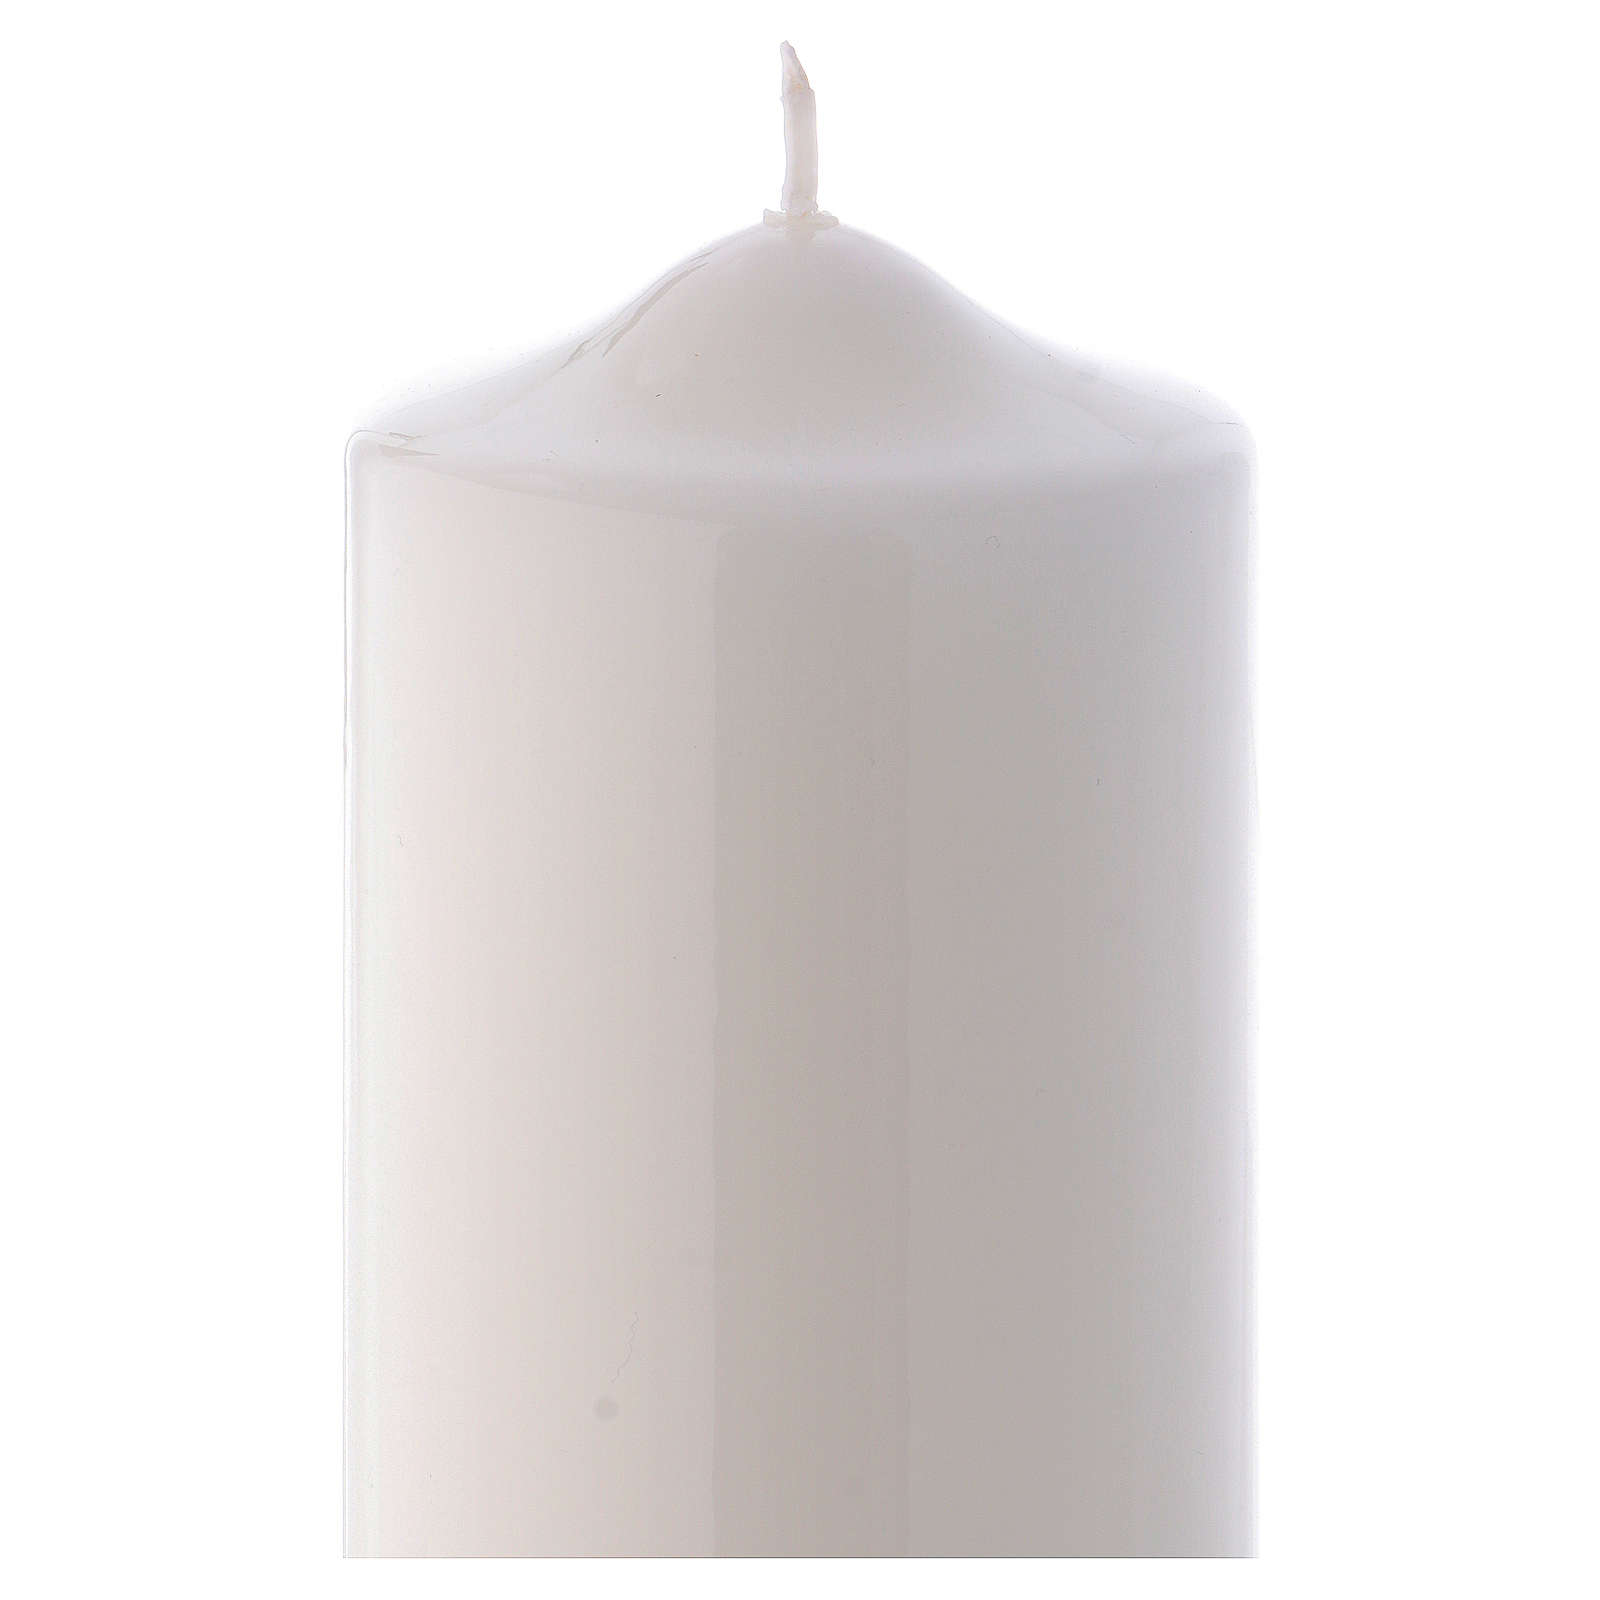 White altar candle 24x8 cm, Ceralacca collection 3